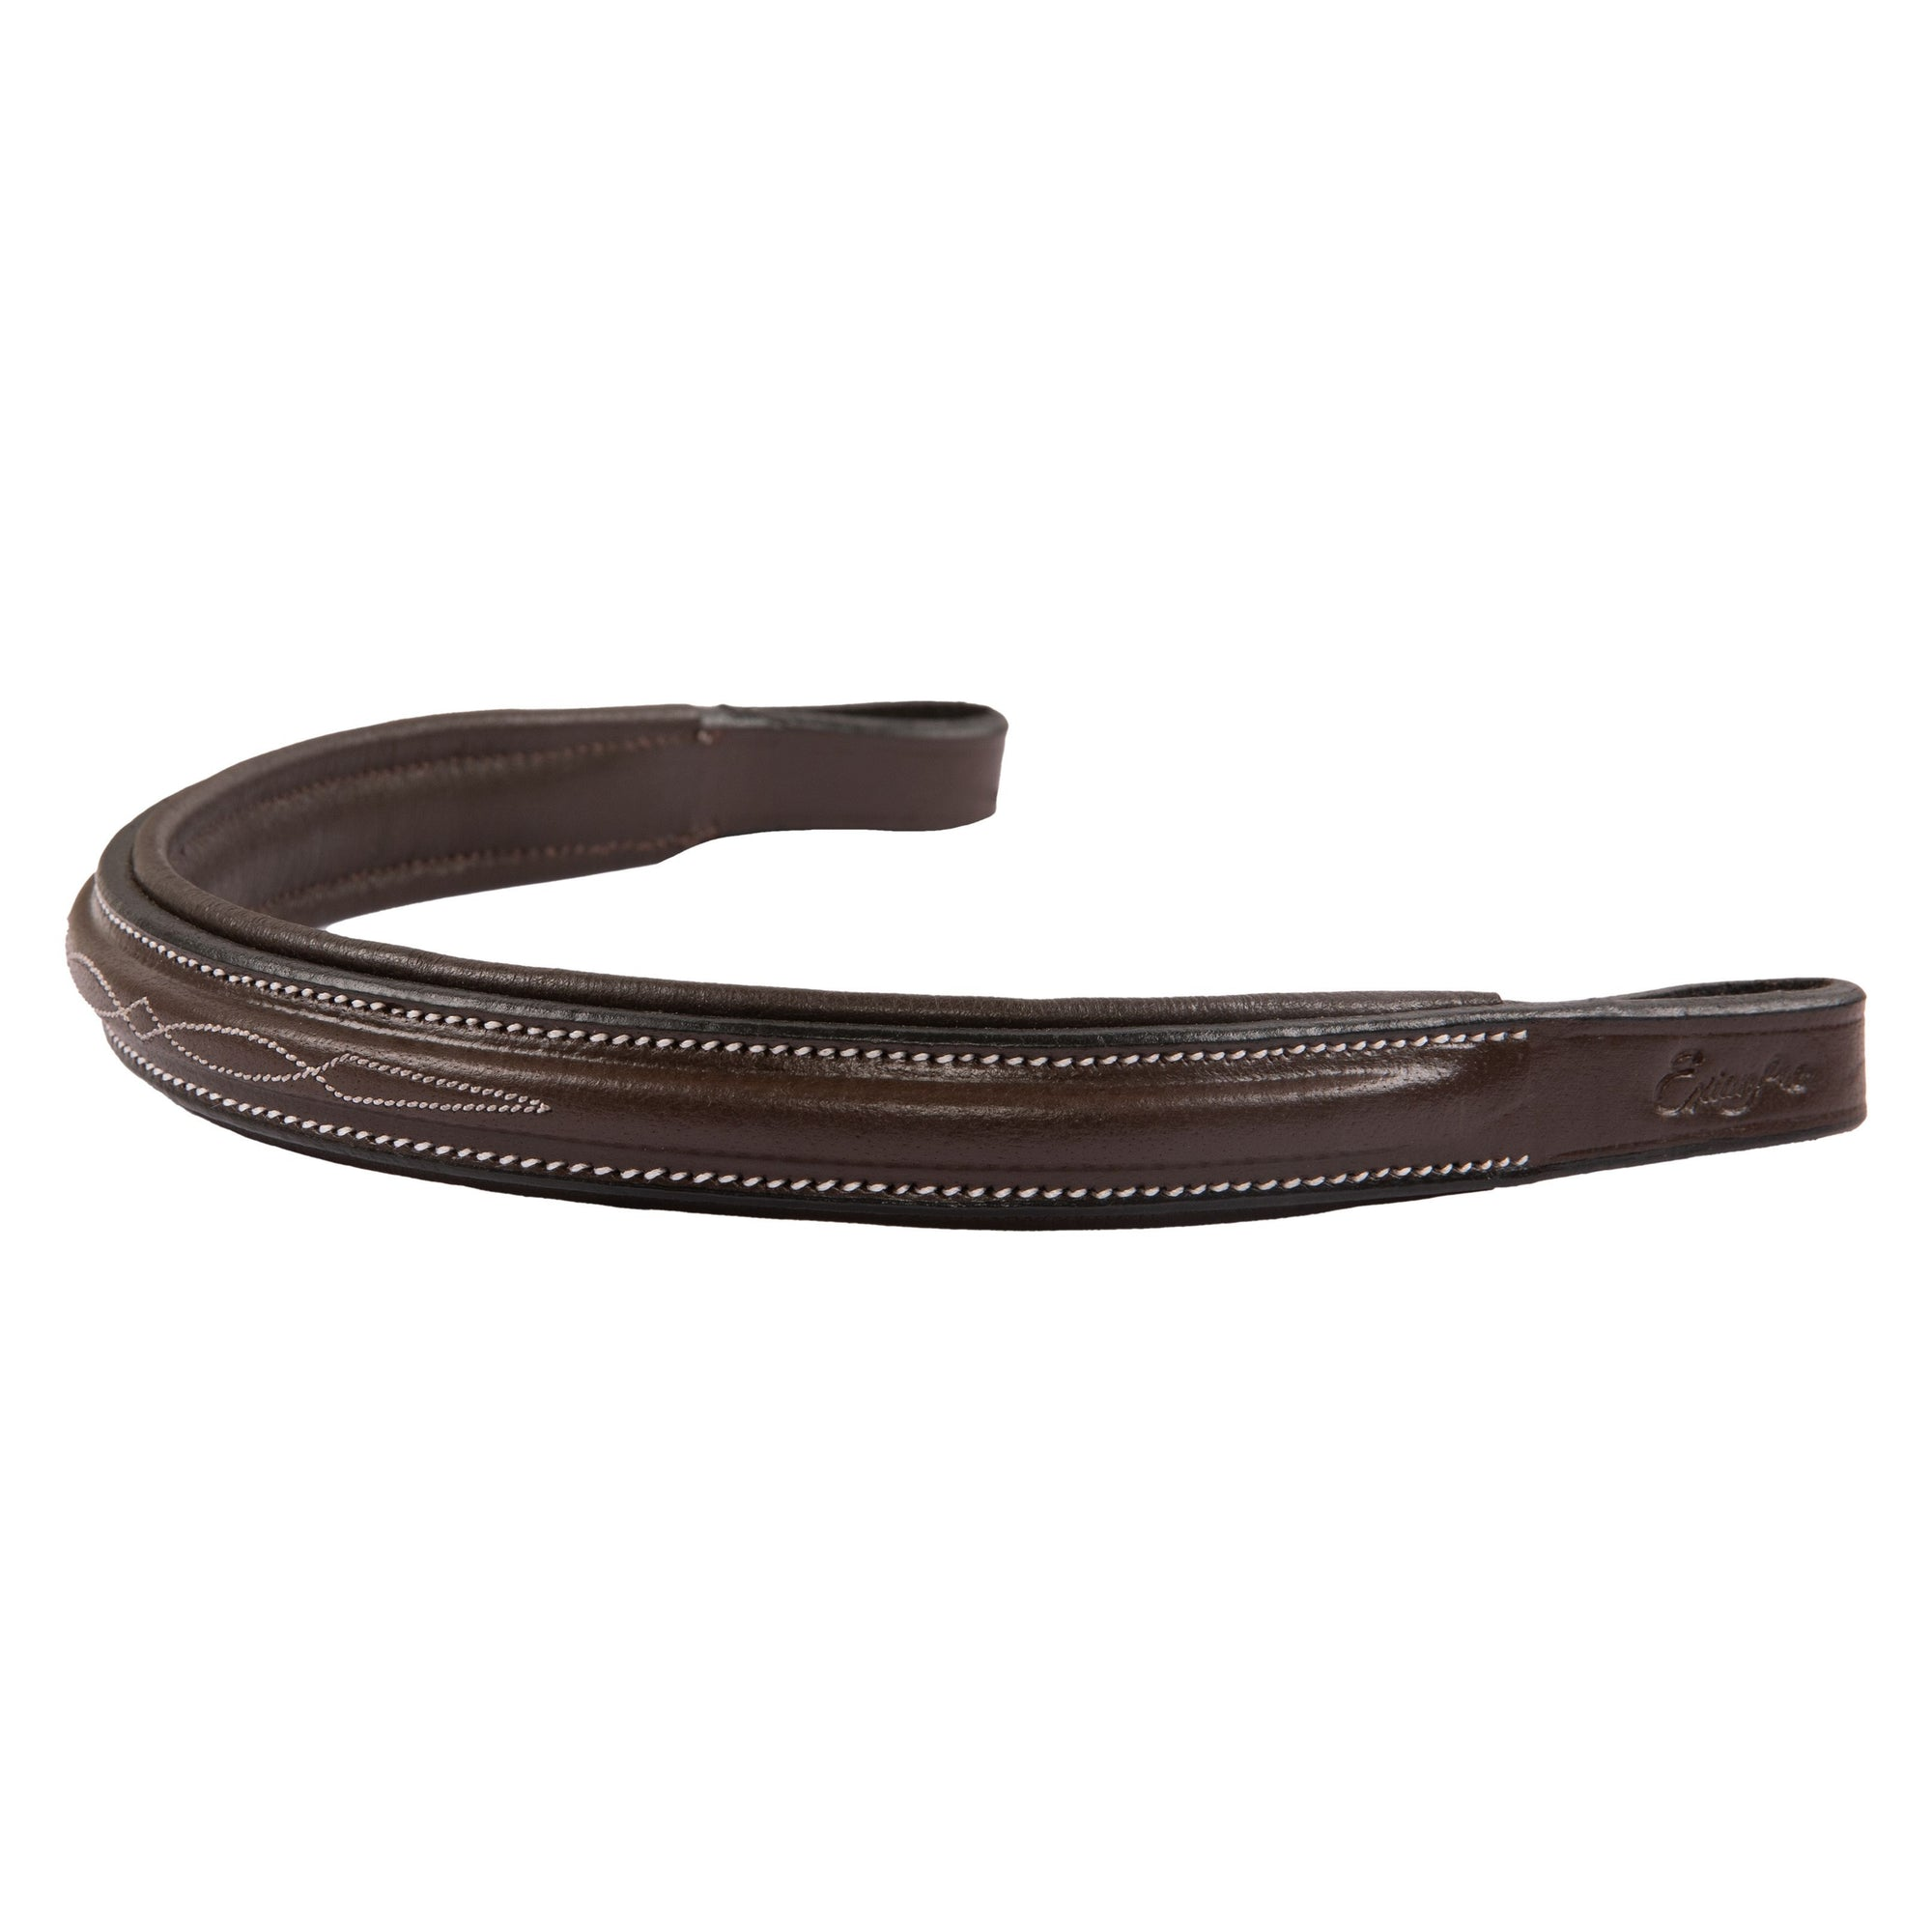 ExionPro Fancy Stitched Square Raised Padded Browband-Bridles & Reins